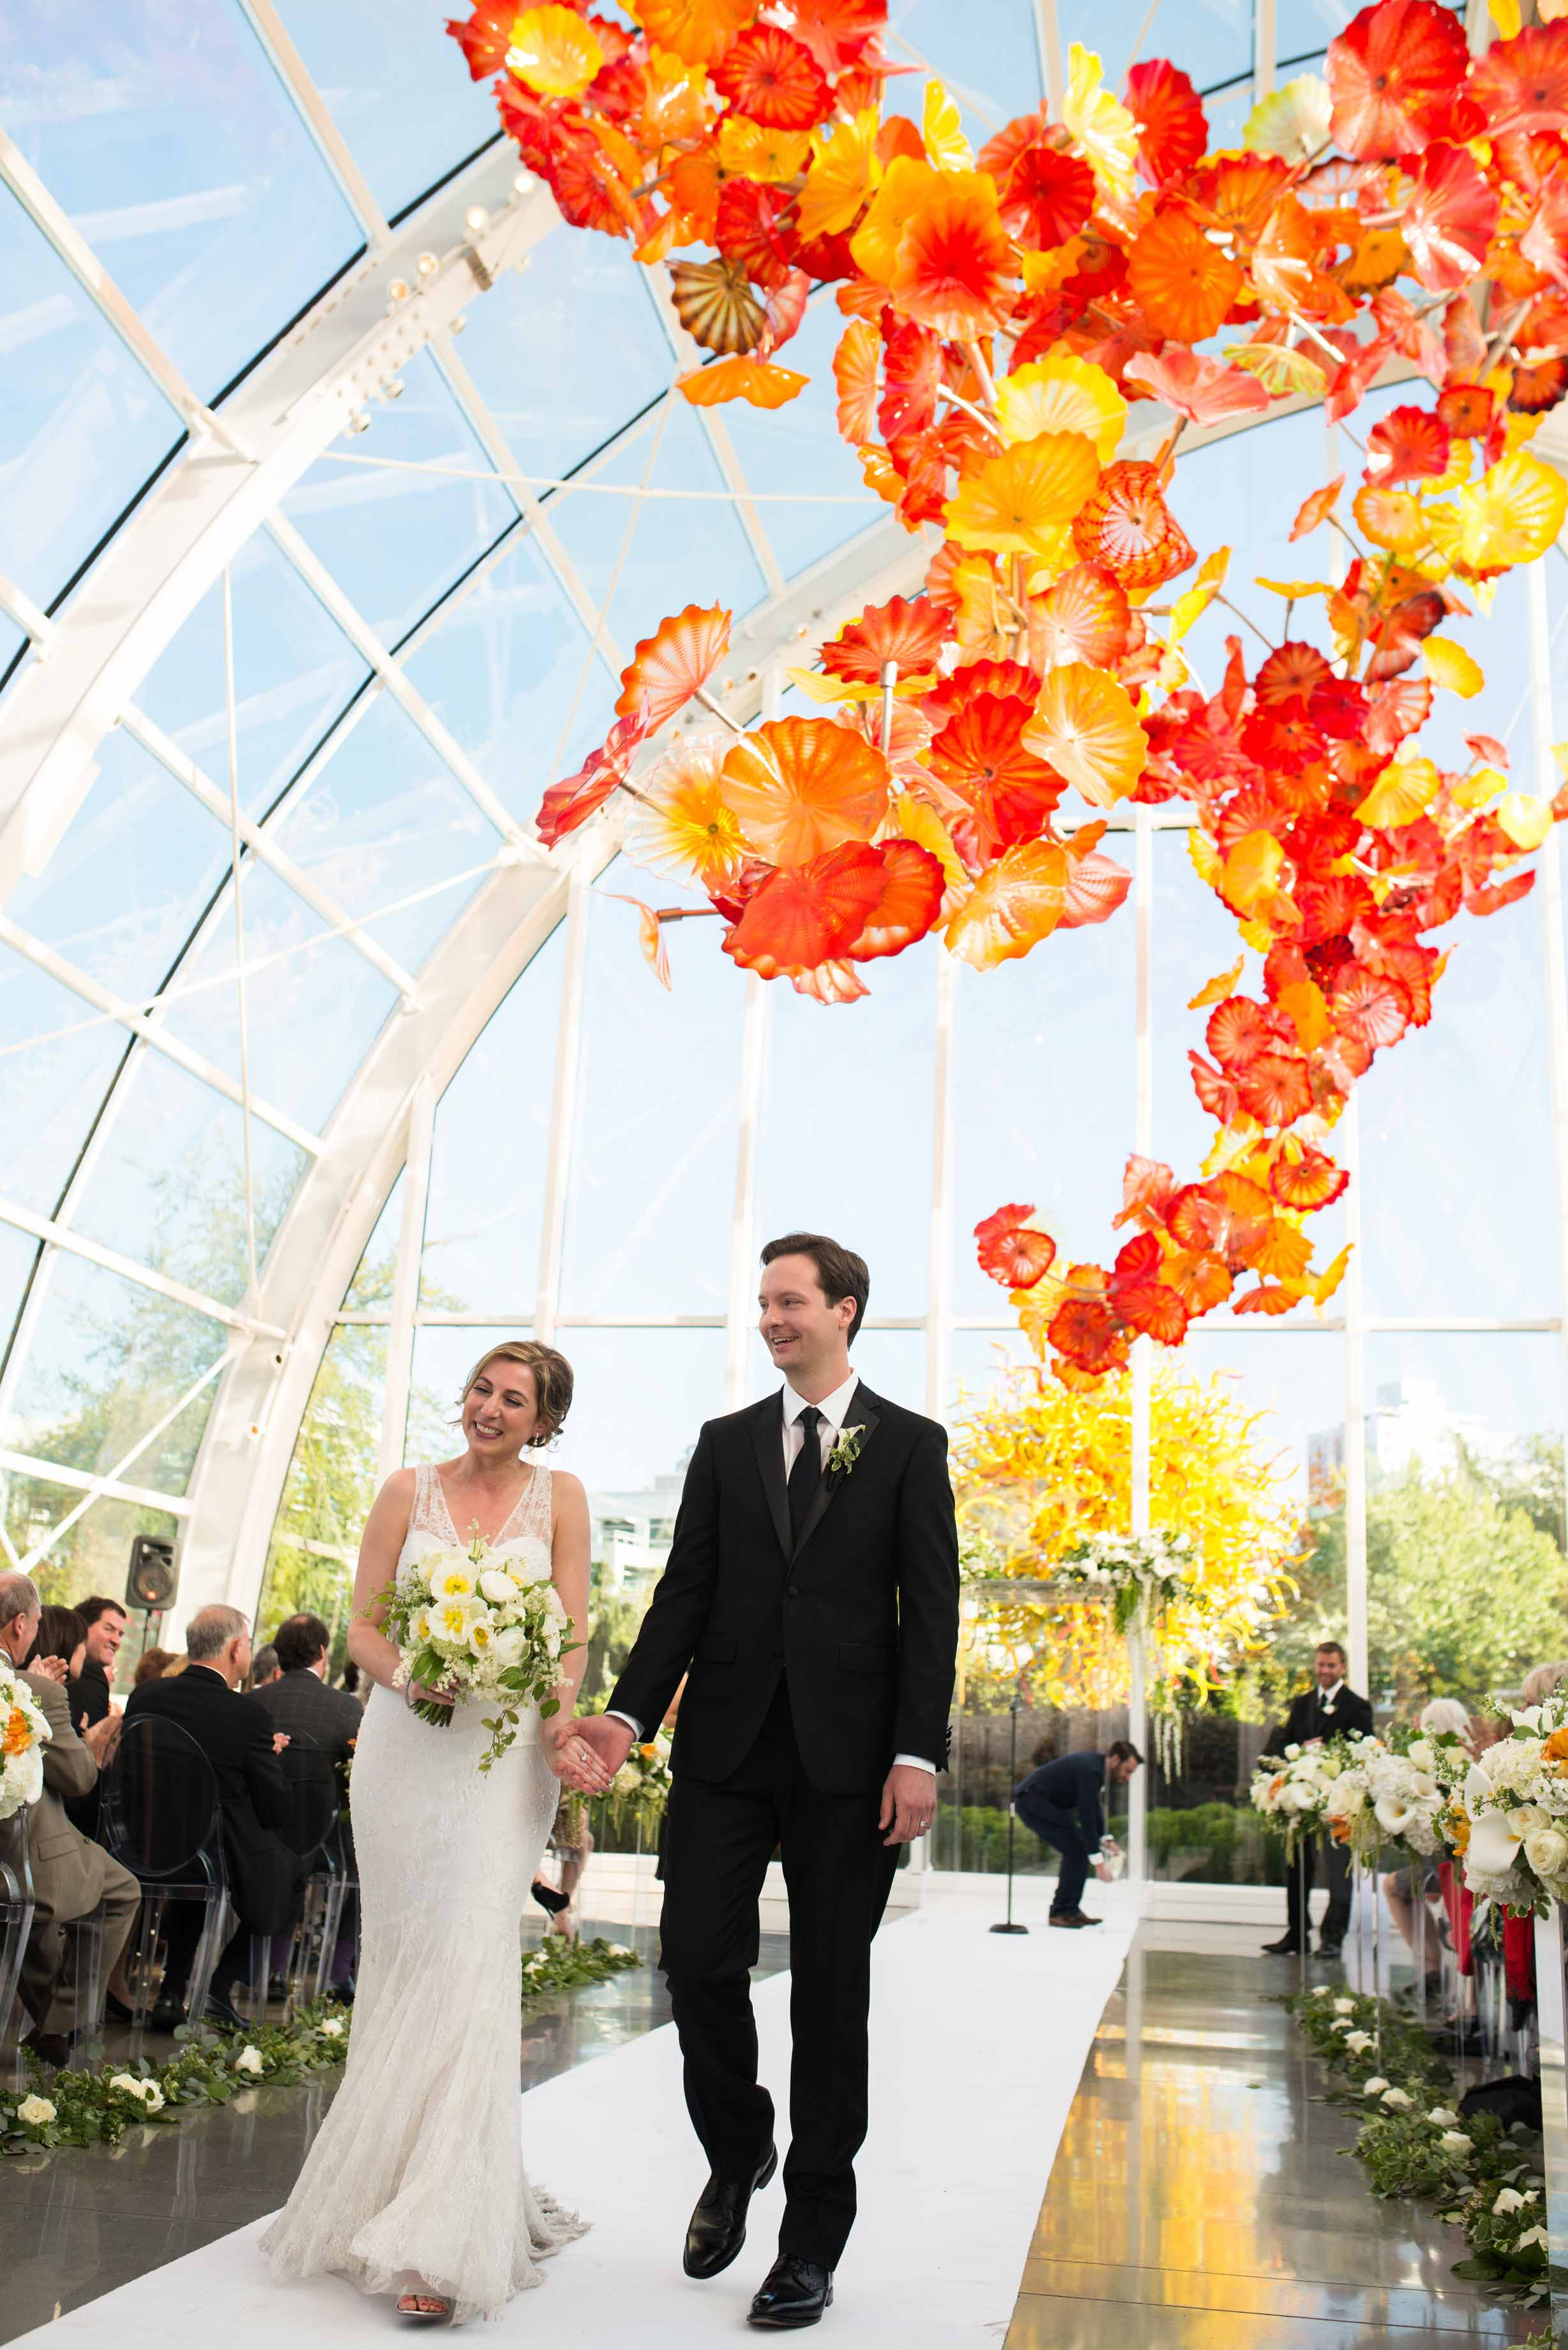 Bride and Groom walking down the aisle at their Chihuly Garden and Glass Wedding in Seattle - by Flora Nova Design